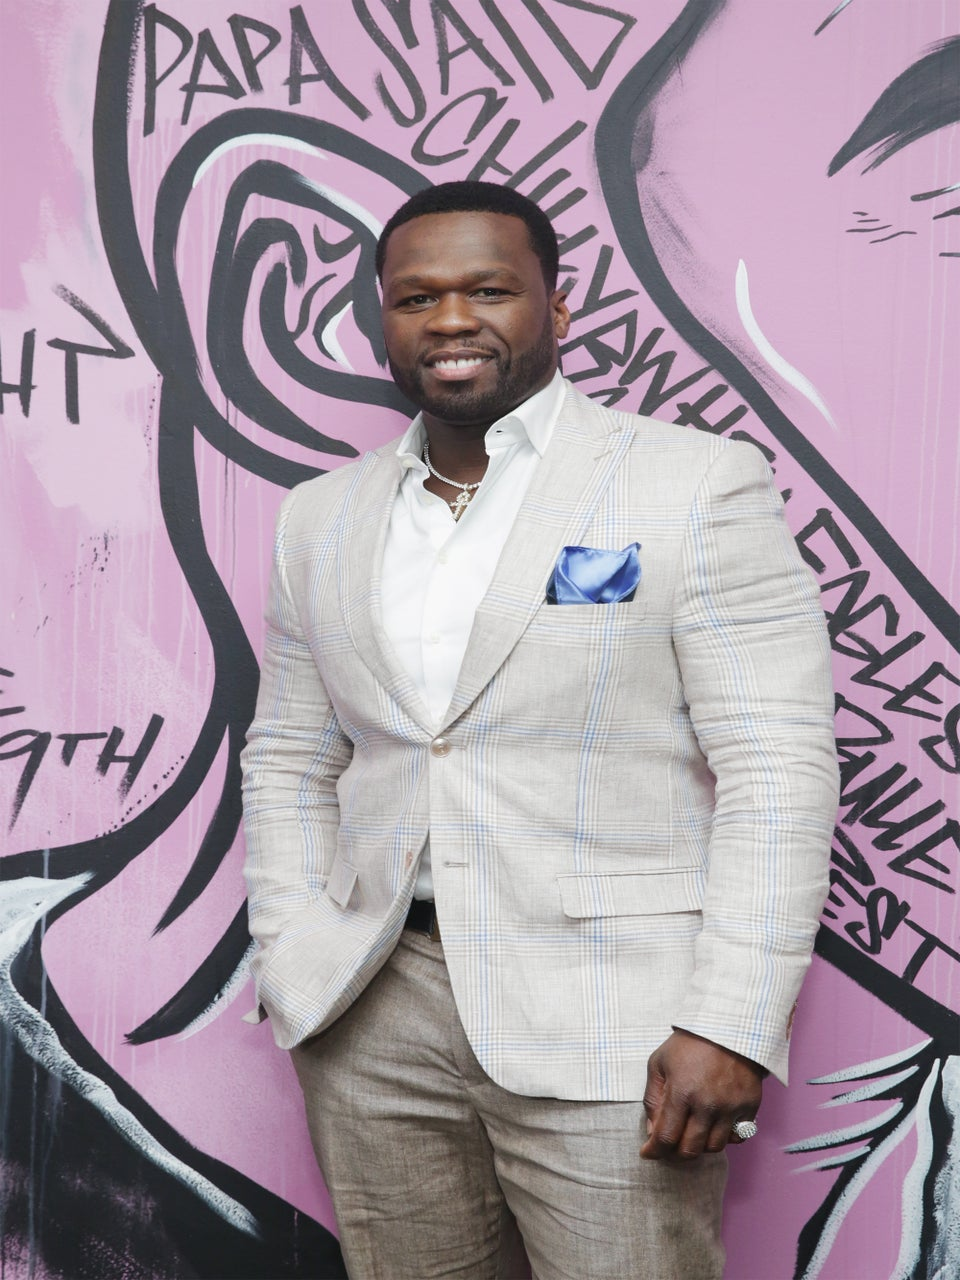 50 Cent Says He Would 'Never Make Fun Of Any Sexual Assault Victim' After Backlash Over Terry Crews Comments